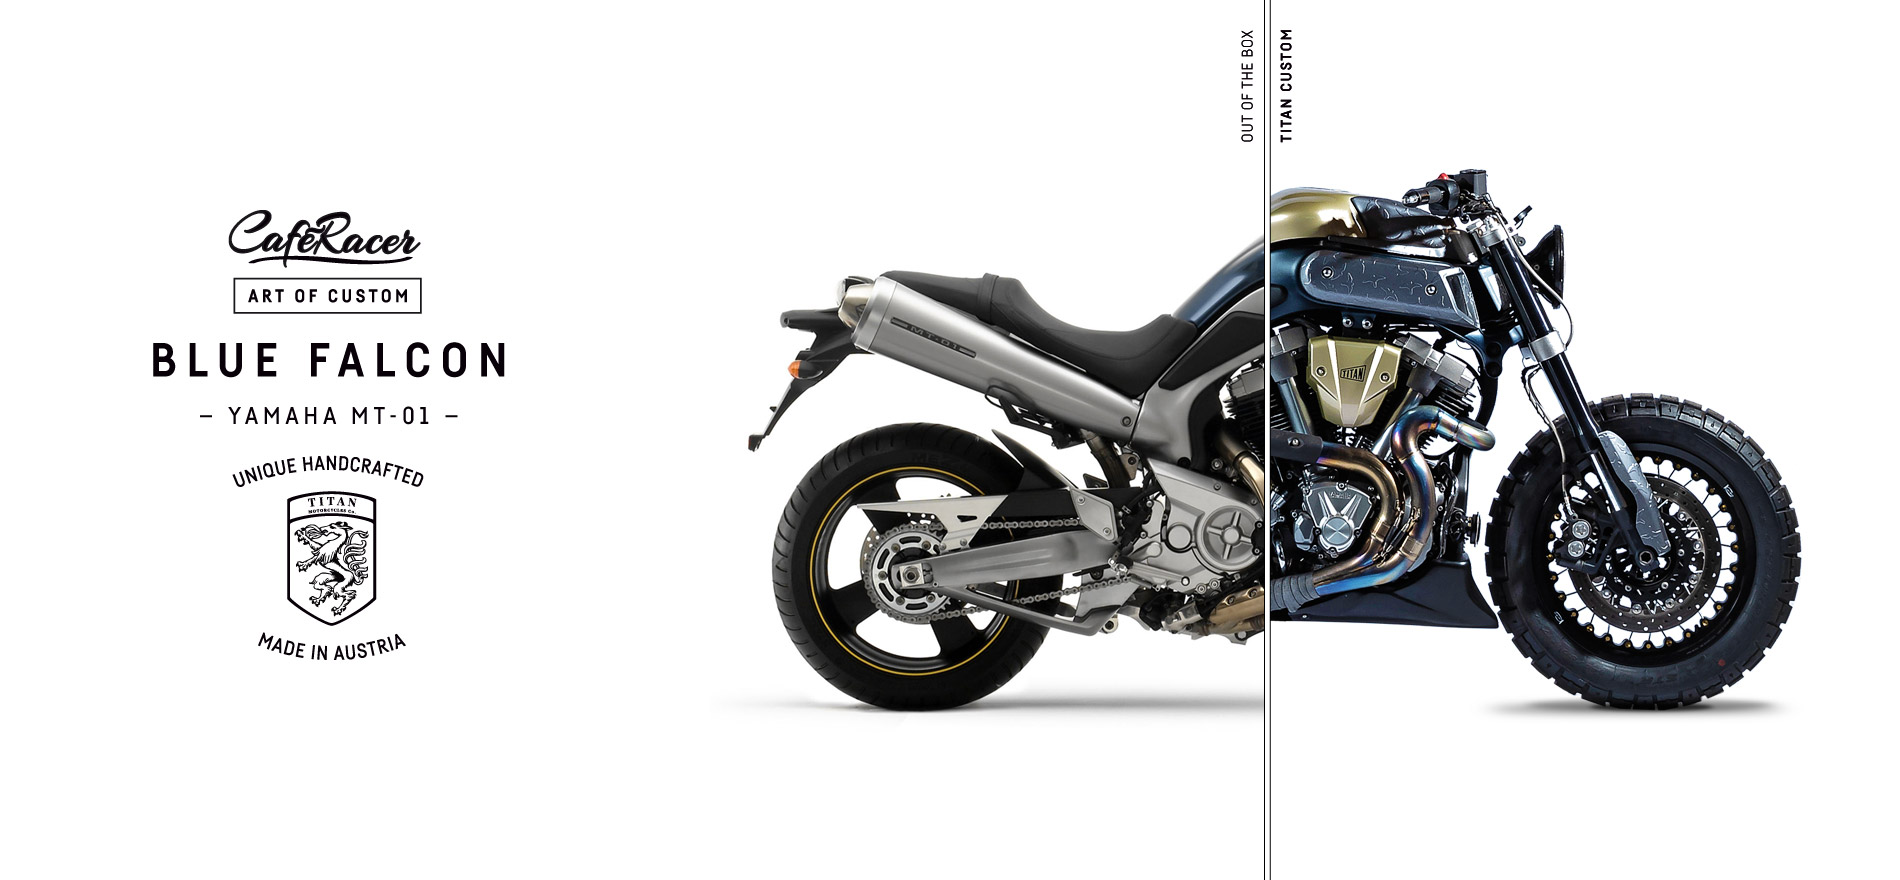 TITAN_CustomBike_CafeRacer_Graz_MadeInAustria_Before-After_Blue-Falcon_Yamaha-MT-01_Motorradumbau_Right